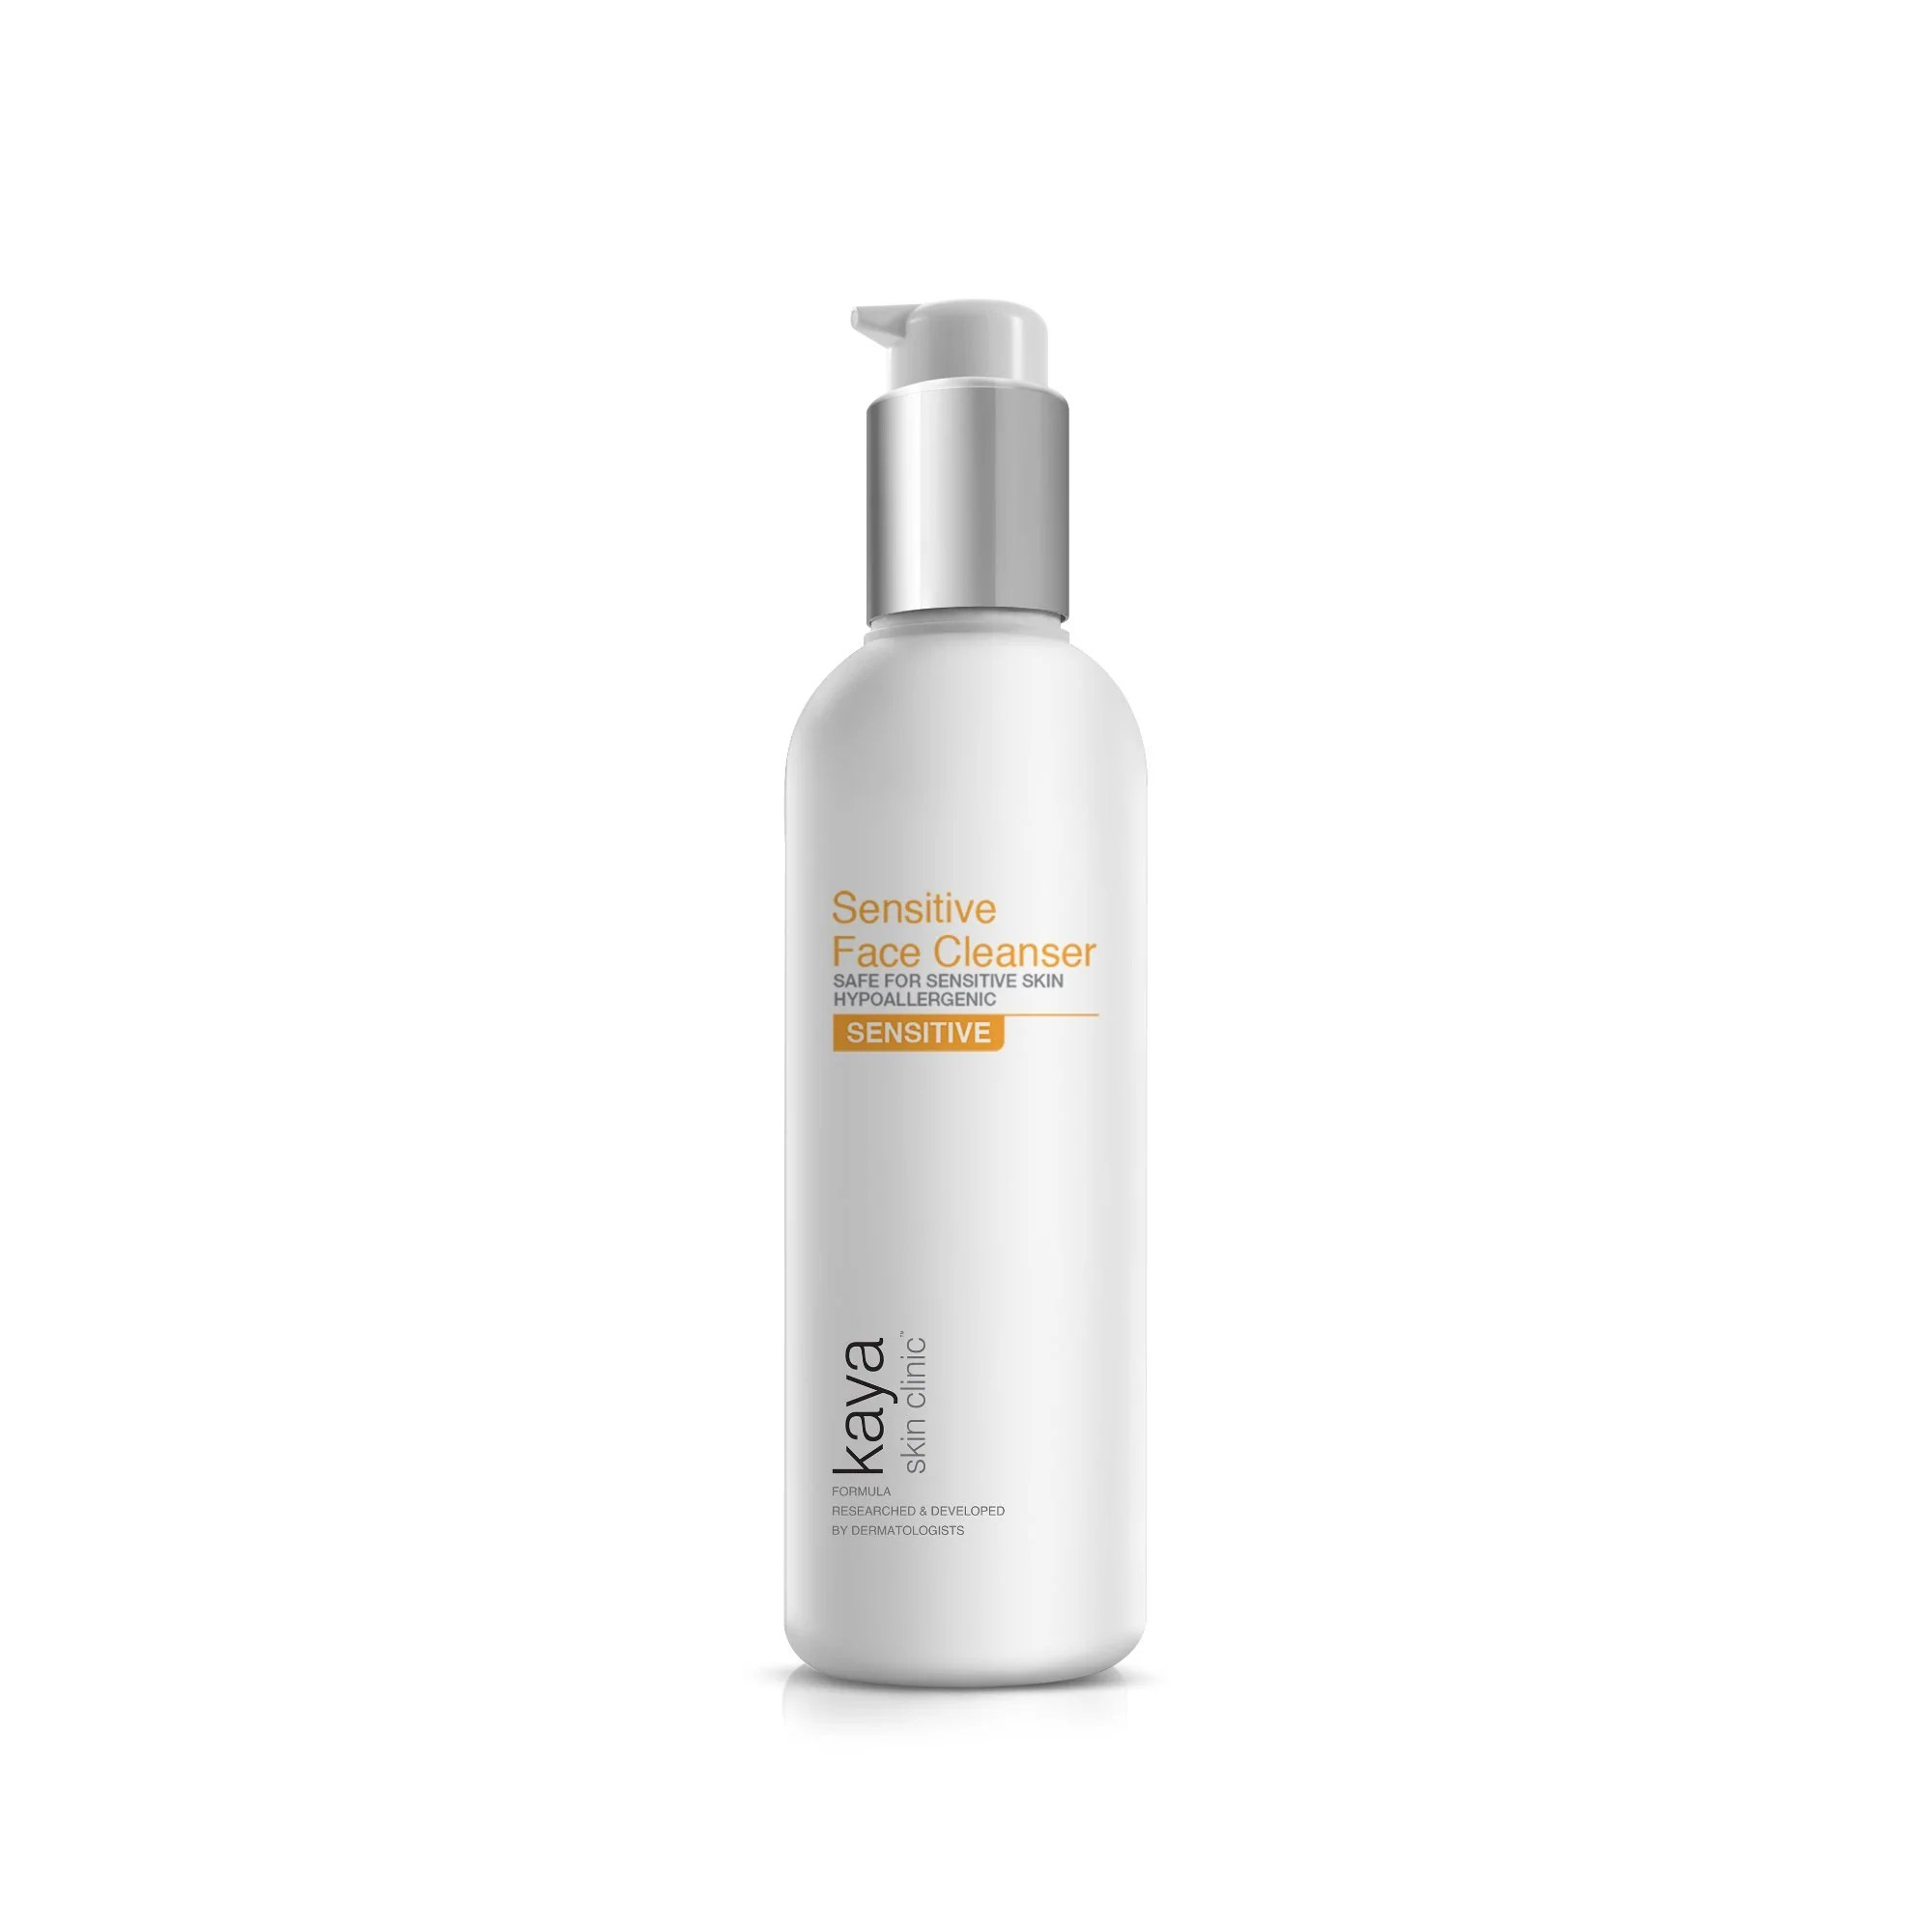 Avail 25% off on Kaya Daily Skin Products Online - Kaya ...